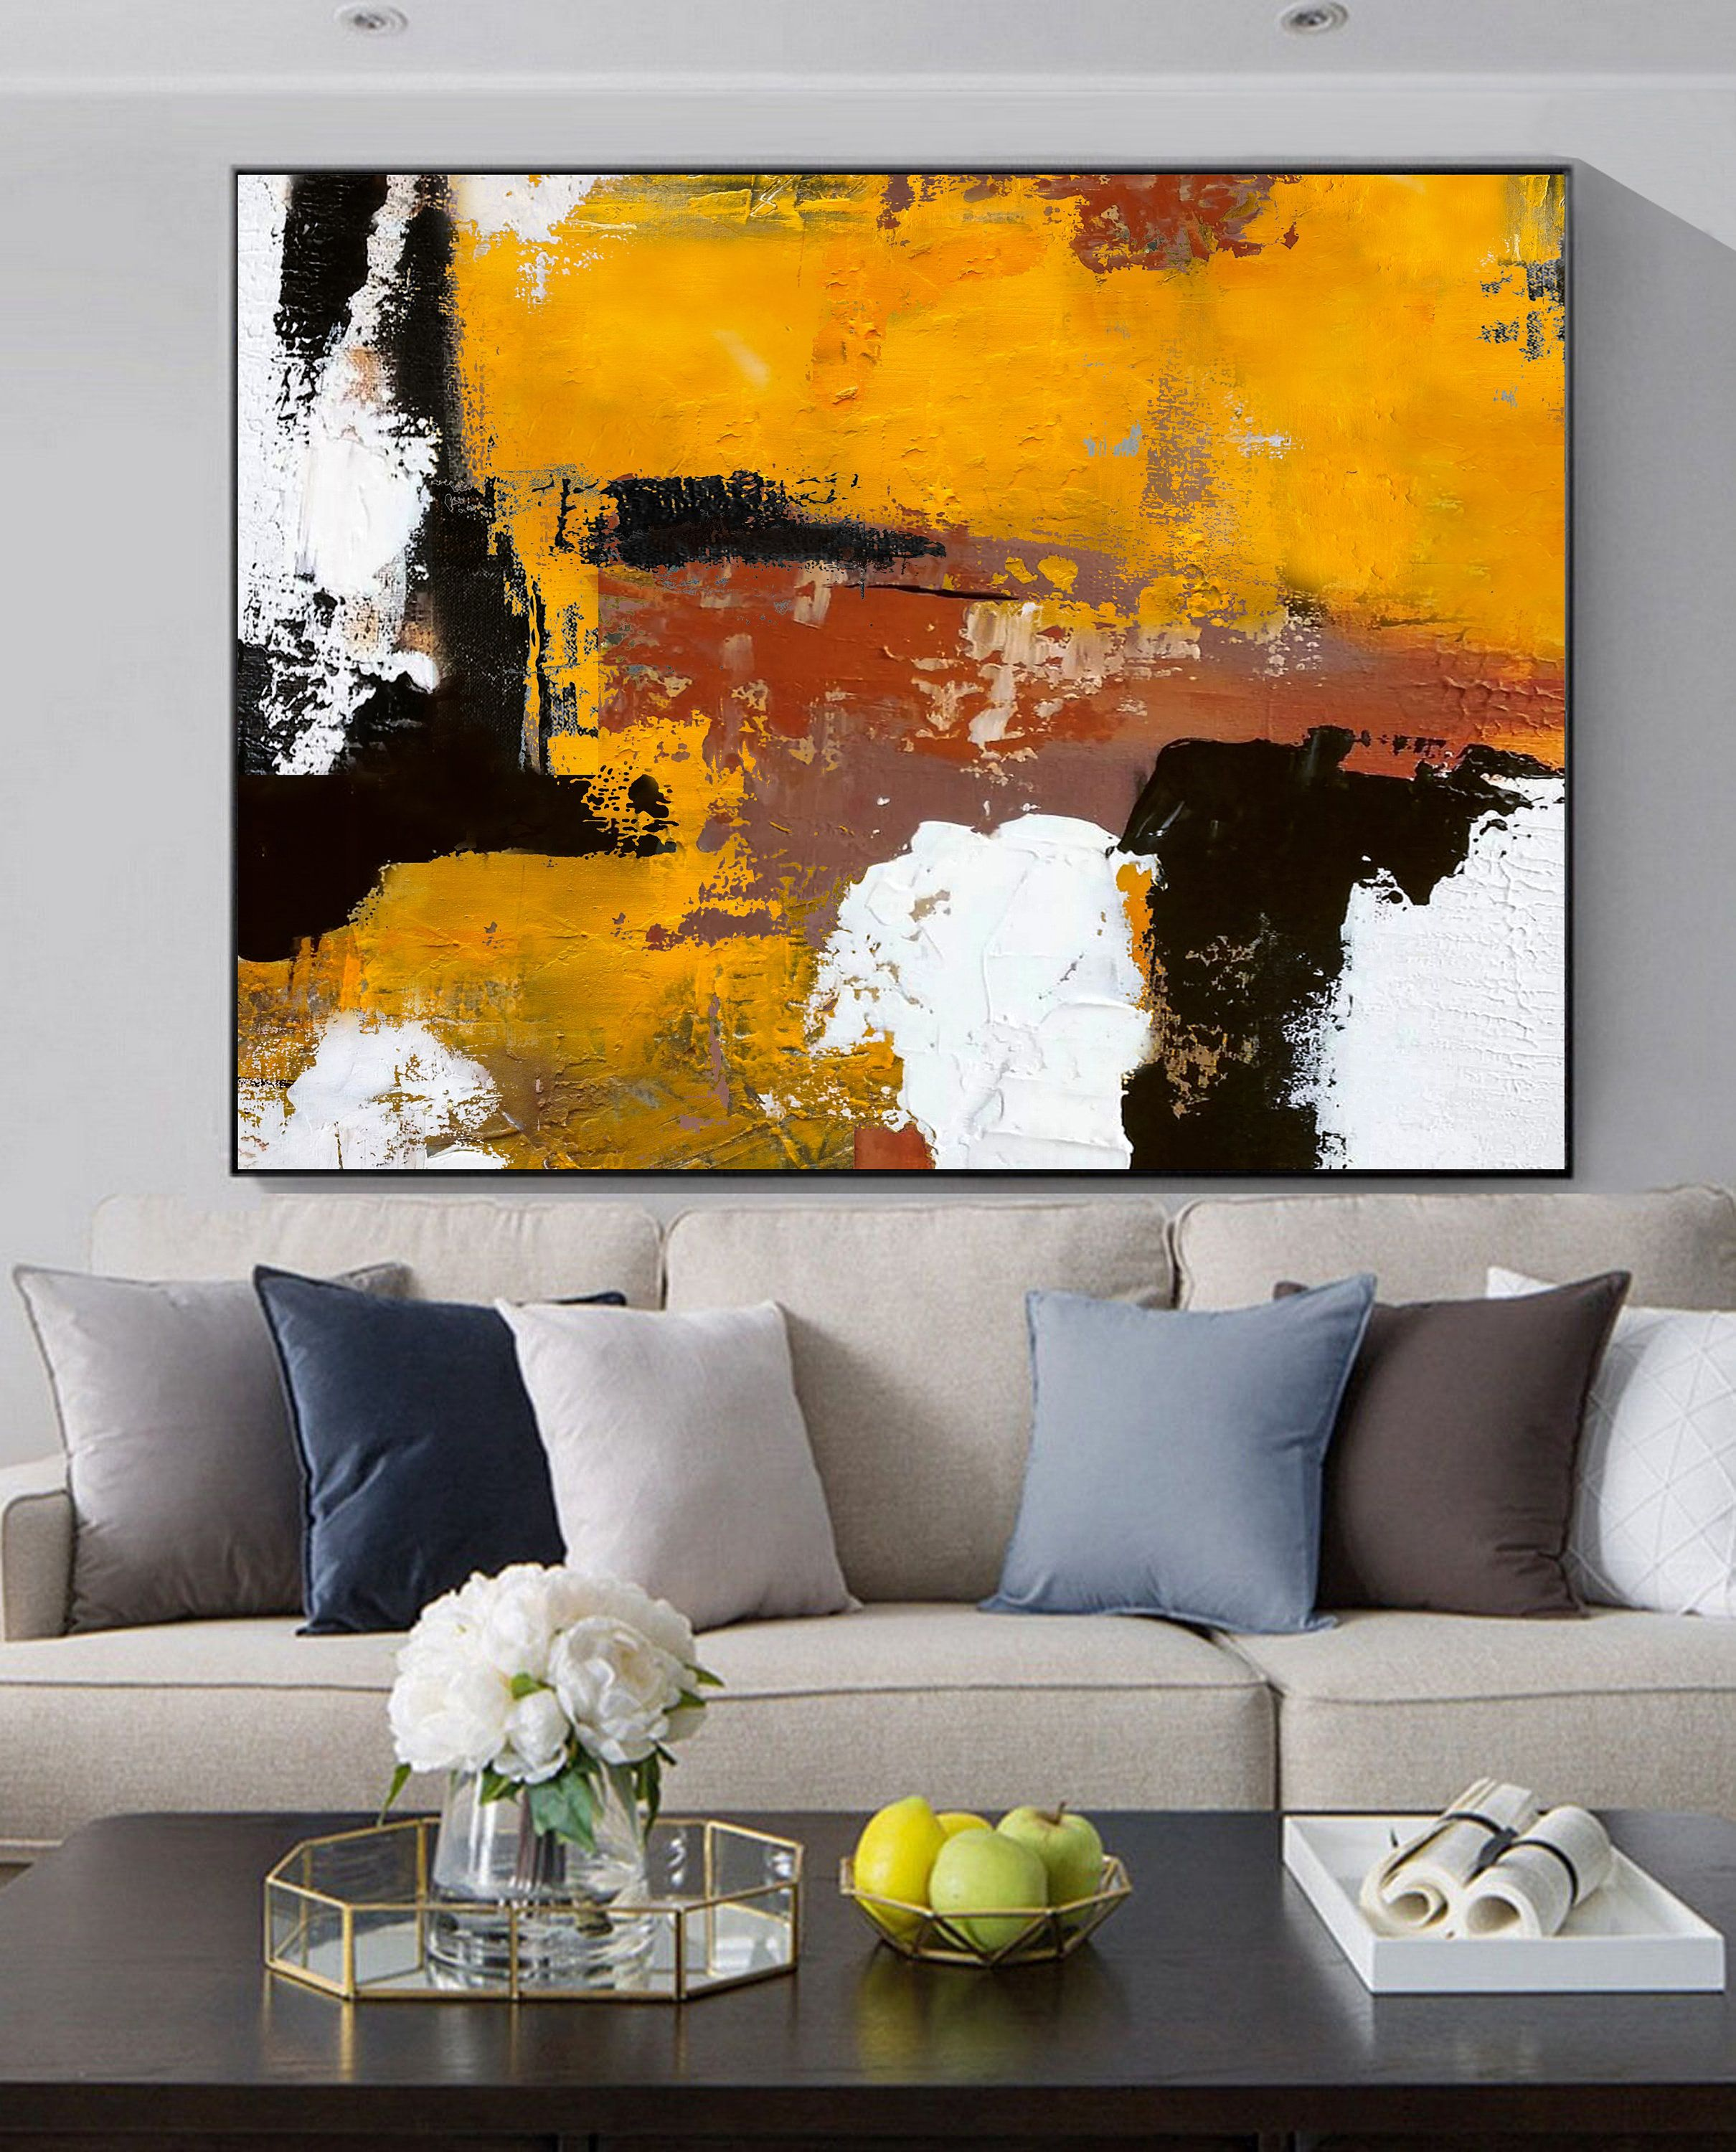 Etsy Shop Original Burnt Orange Abstract Painting Black White Abstract On Canvas Painting Wall Canvas Painting Abstract Art Painting Abstract Canvas Painting #oil #painting #living #room